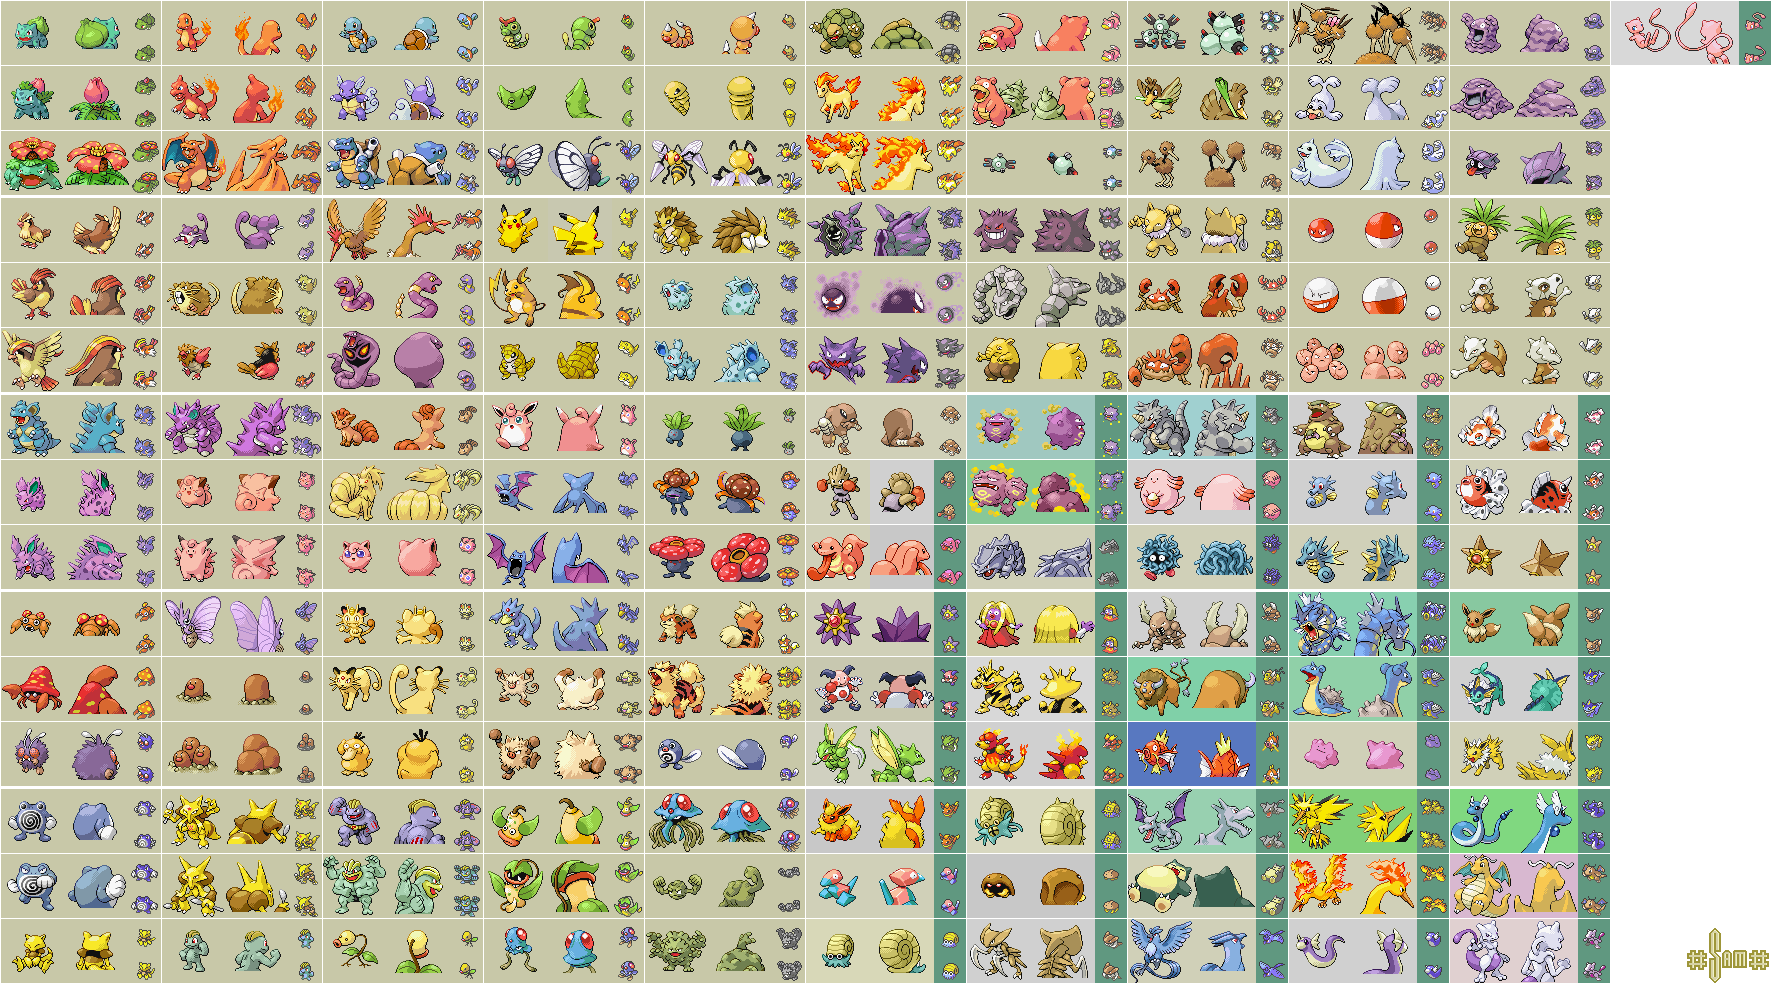 Pokemon Fire Red/Leaf Green - Kanto Pokemon Sprite Sheet